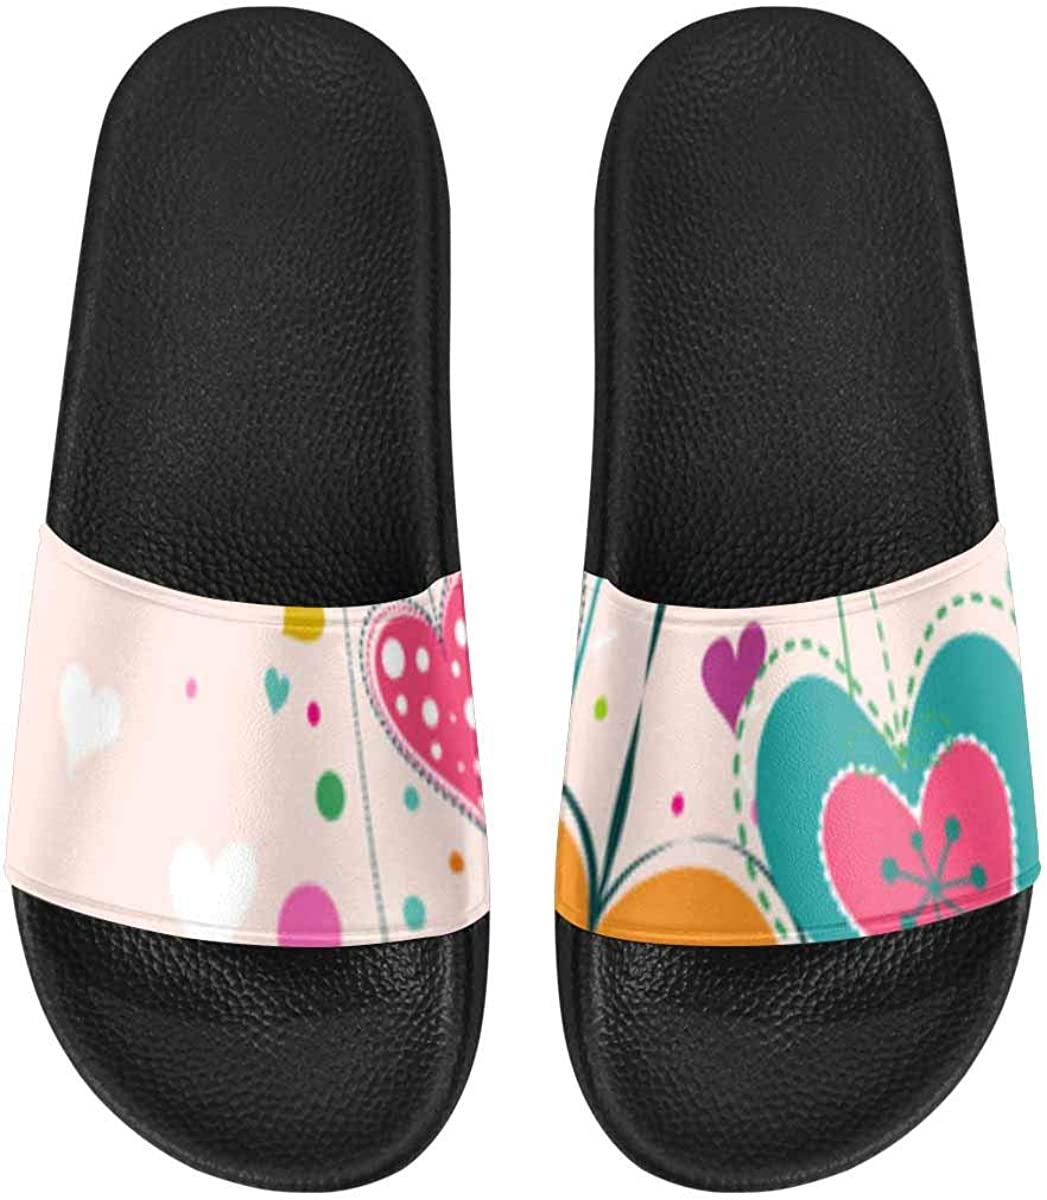 InterestPrint Women's Slide Sandals with PVC Straps and Sole Uni